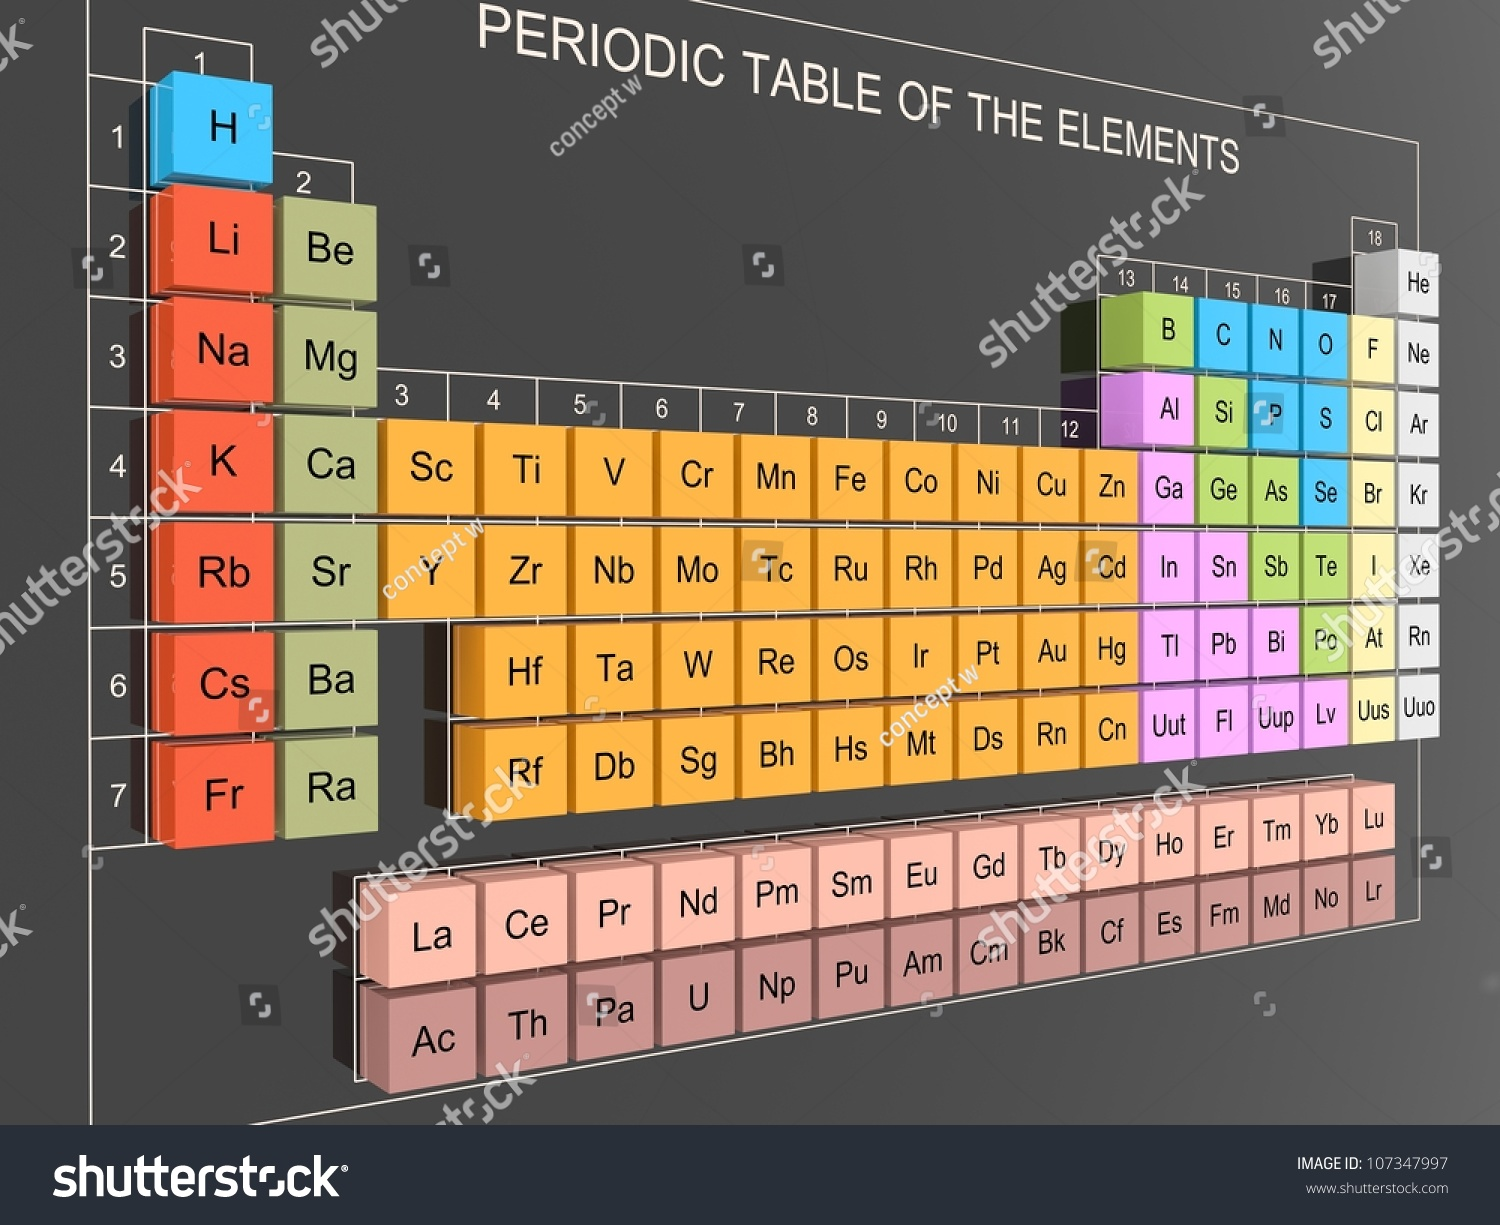 Hf on the periodic table gallery periodic table images periodic table elements mendeleev table on stock illustration periodic table of the elements mendeleev table on gamestrikefo Images